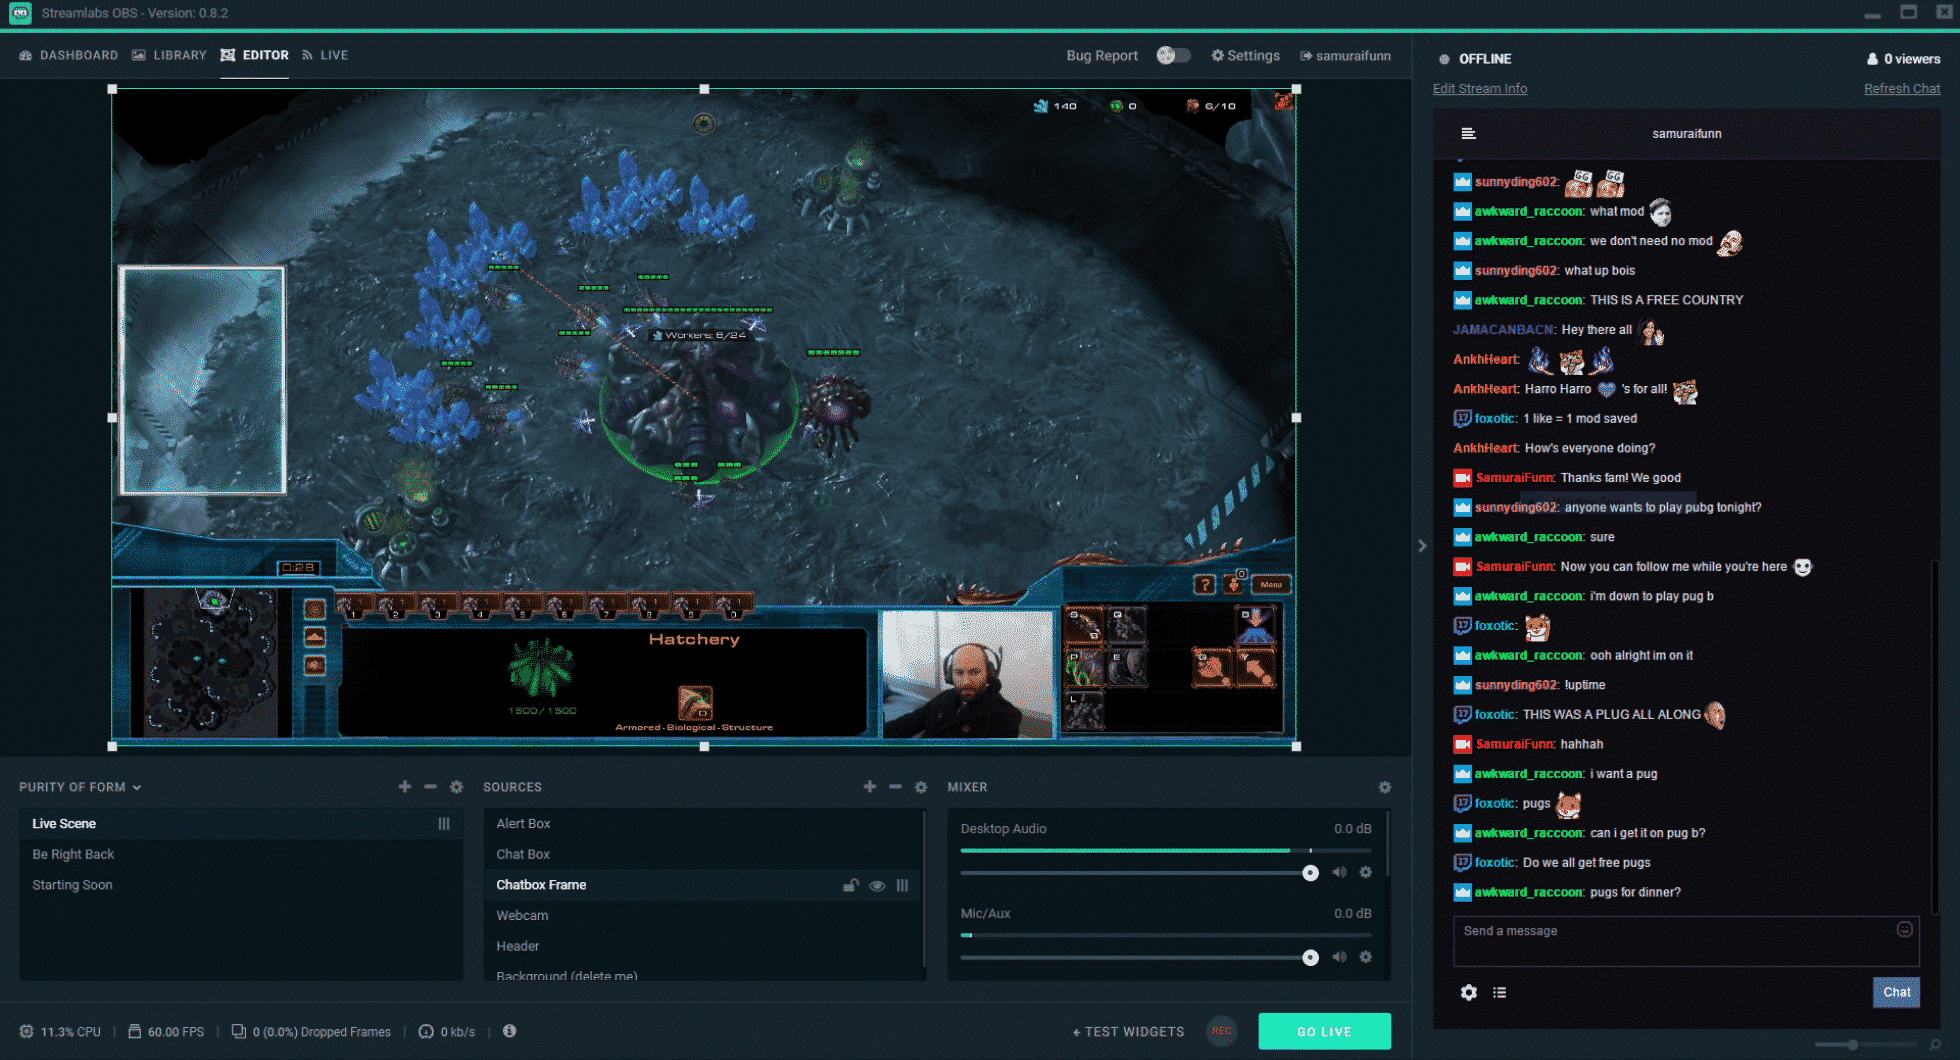 streamlabs obs update for linux development support